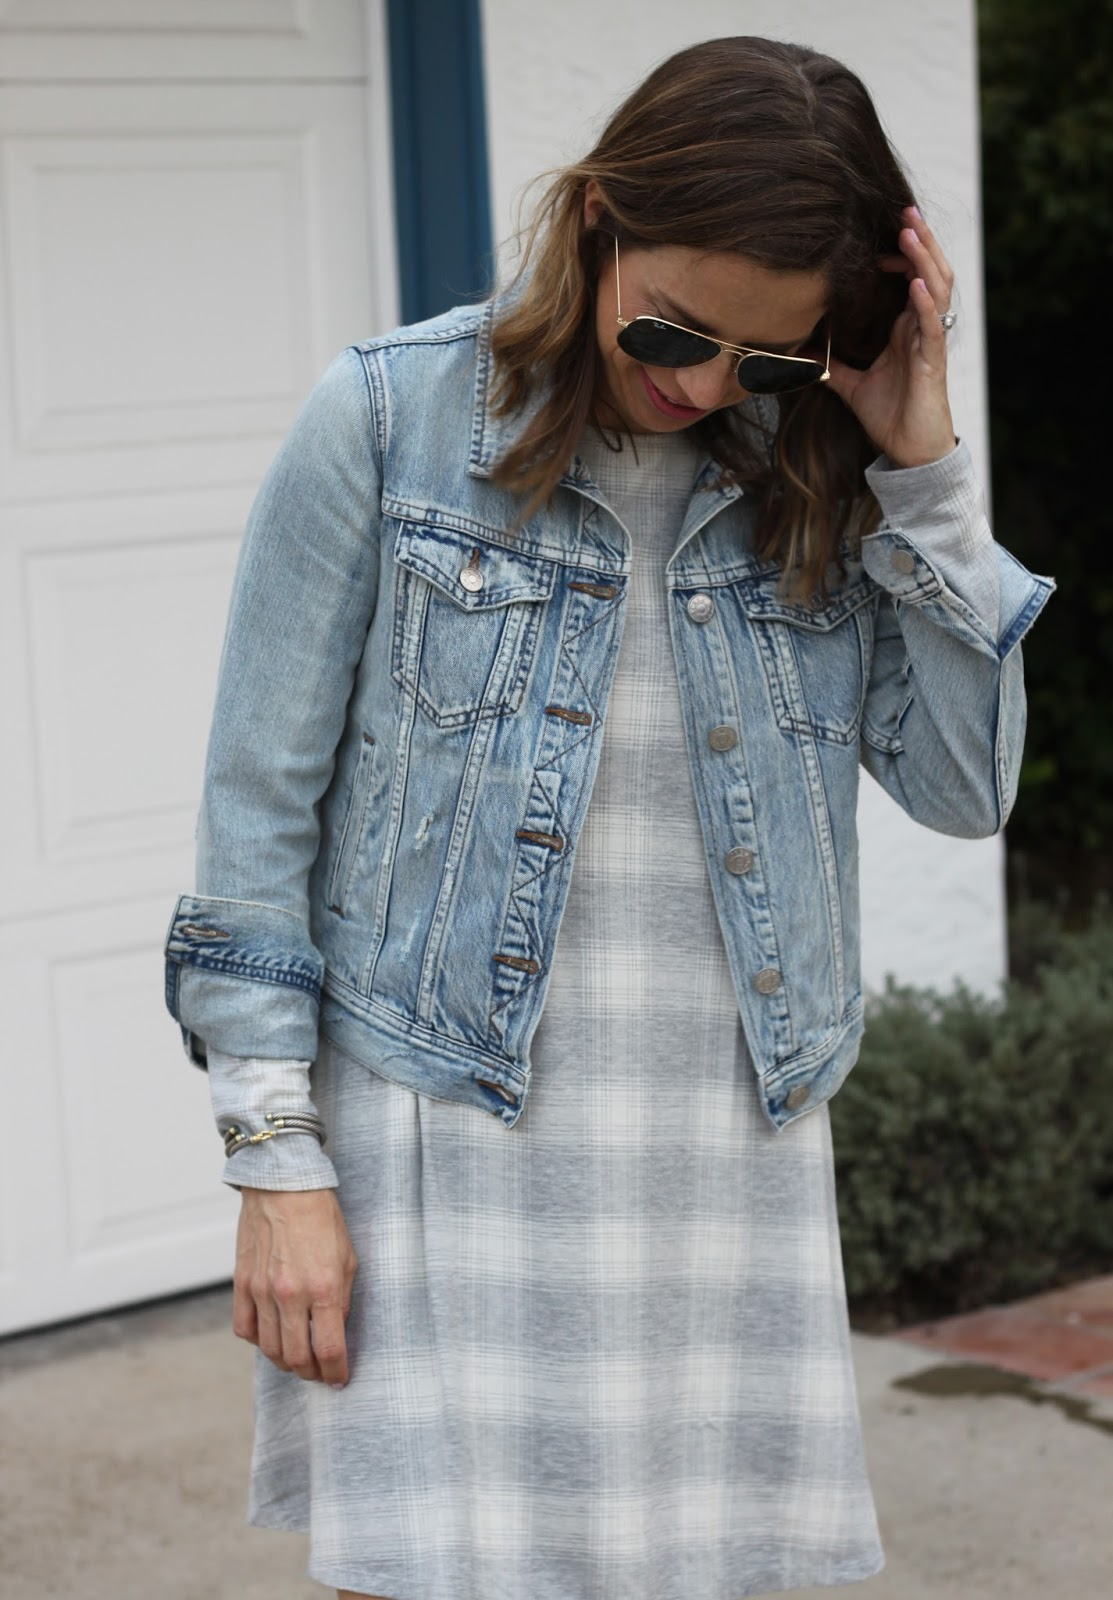 light wash jean jacket and dress